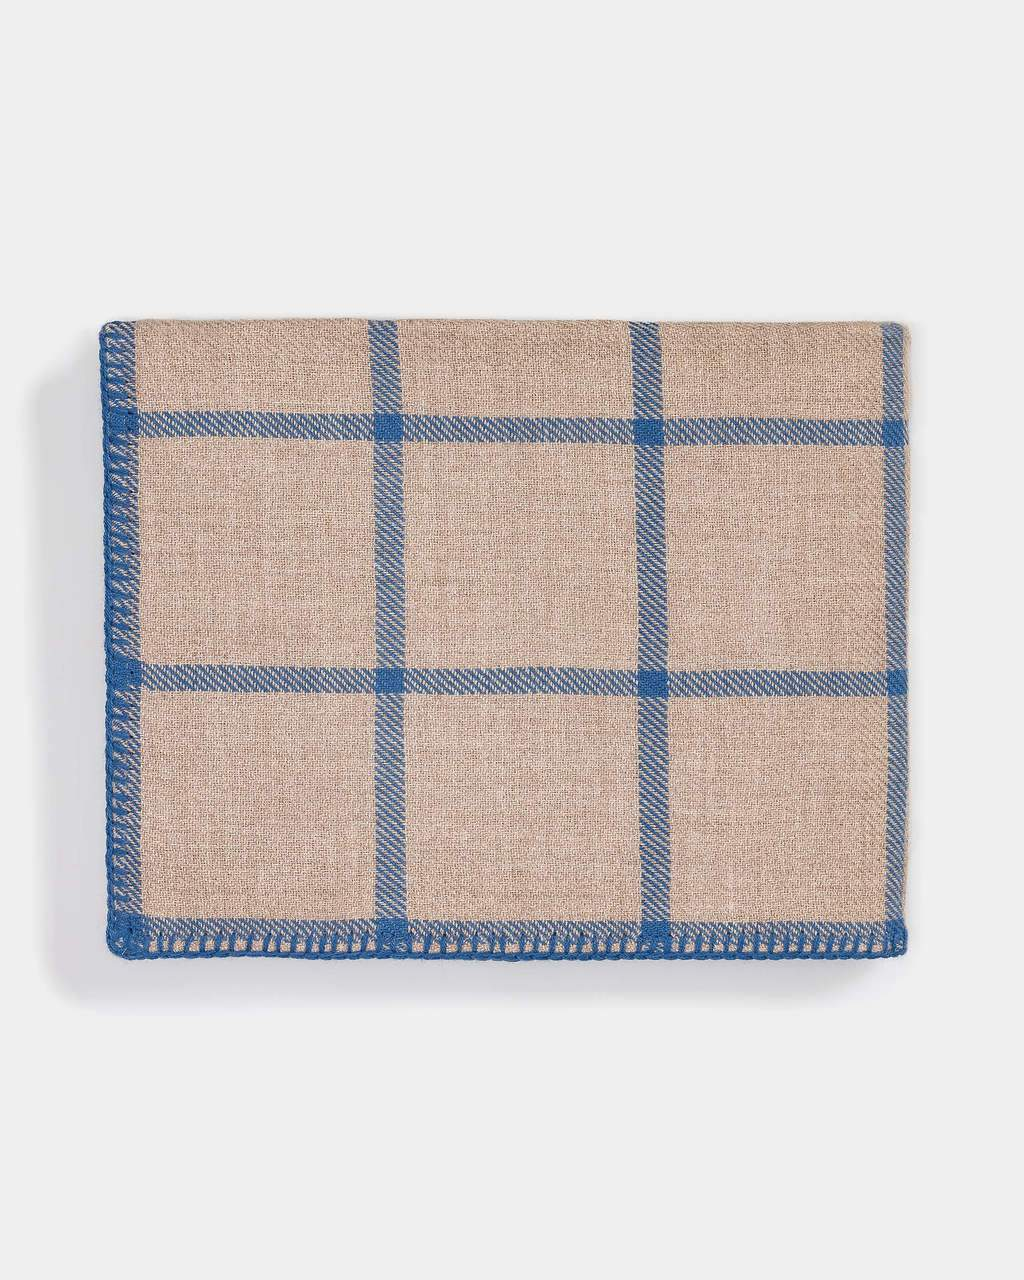 Graydon Alpaca Throw in Light Taupe and Blue by Alicia Adams